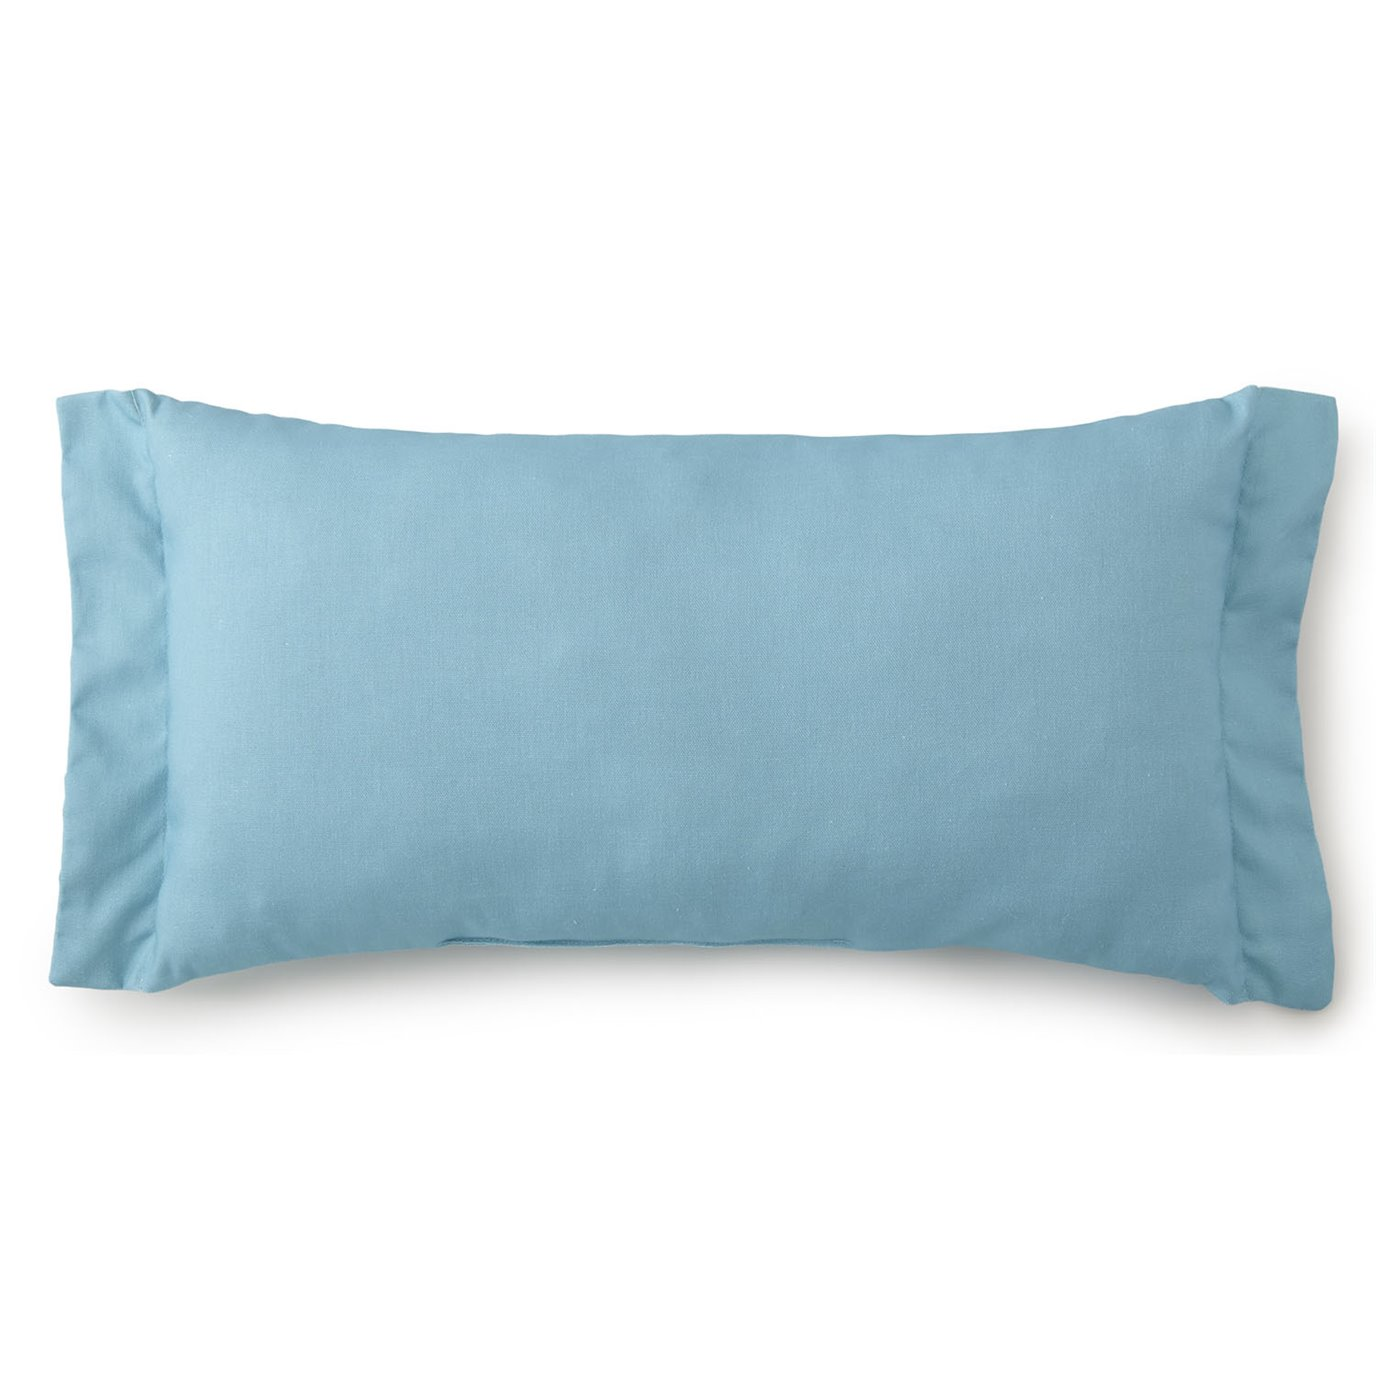 Seascape Long Rectangle Cushion - Solid Aqua